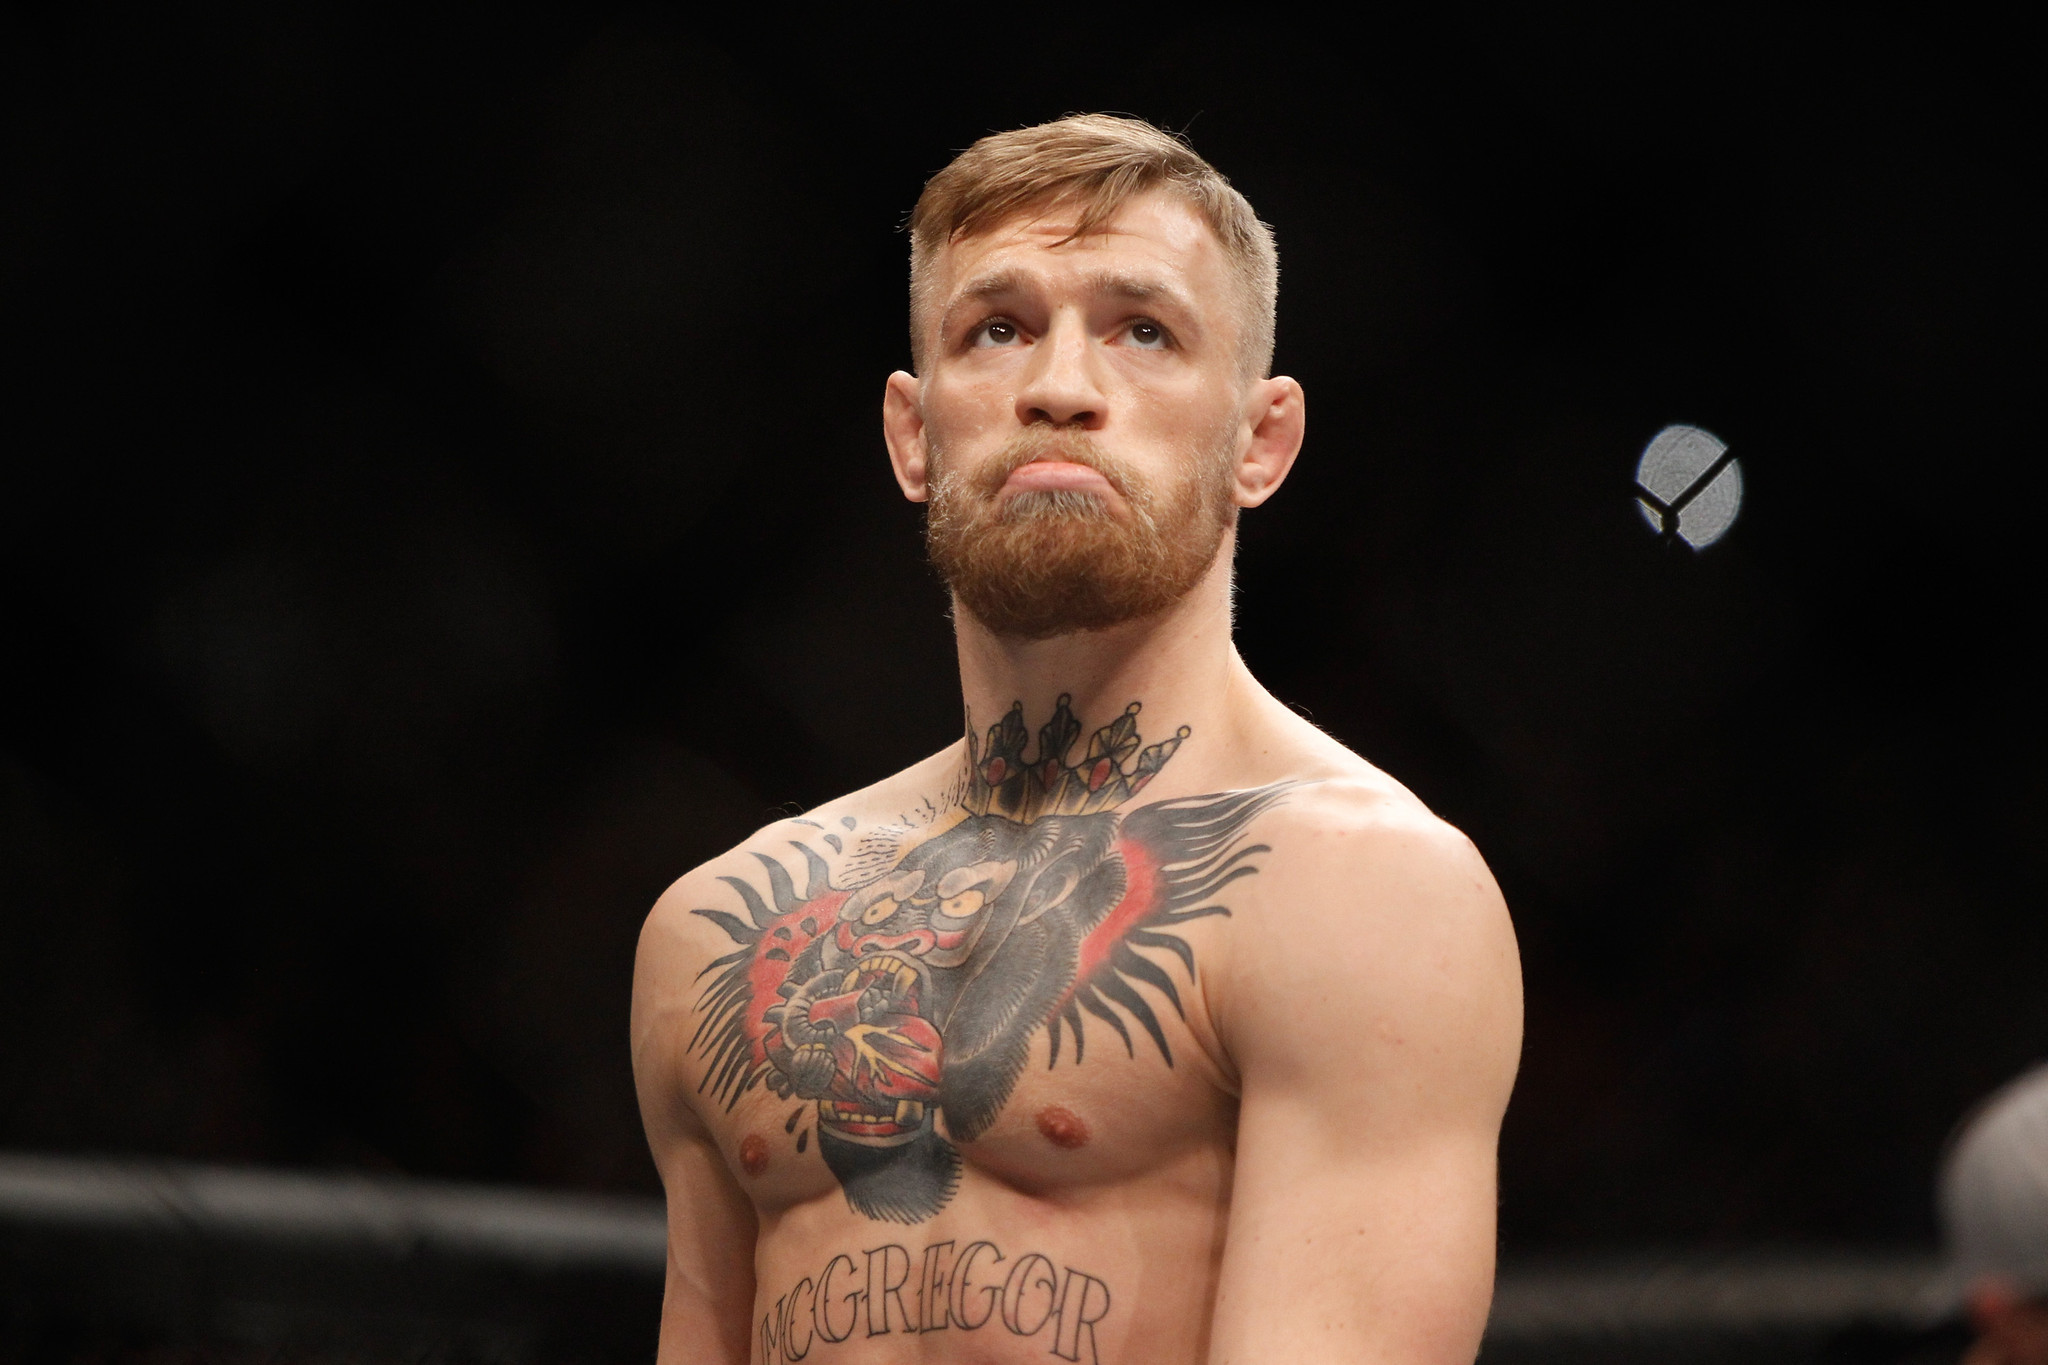 Conor McGregor HD Wallpapers Free Download In High Quality And